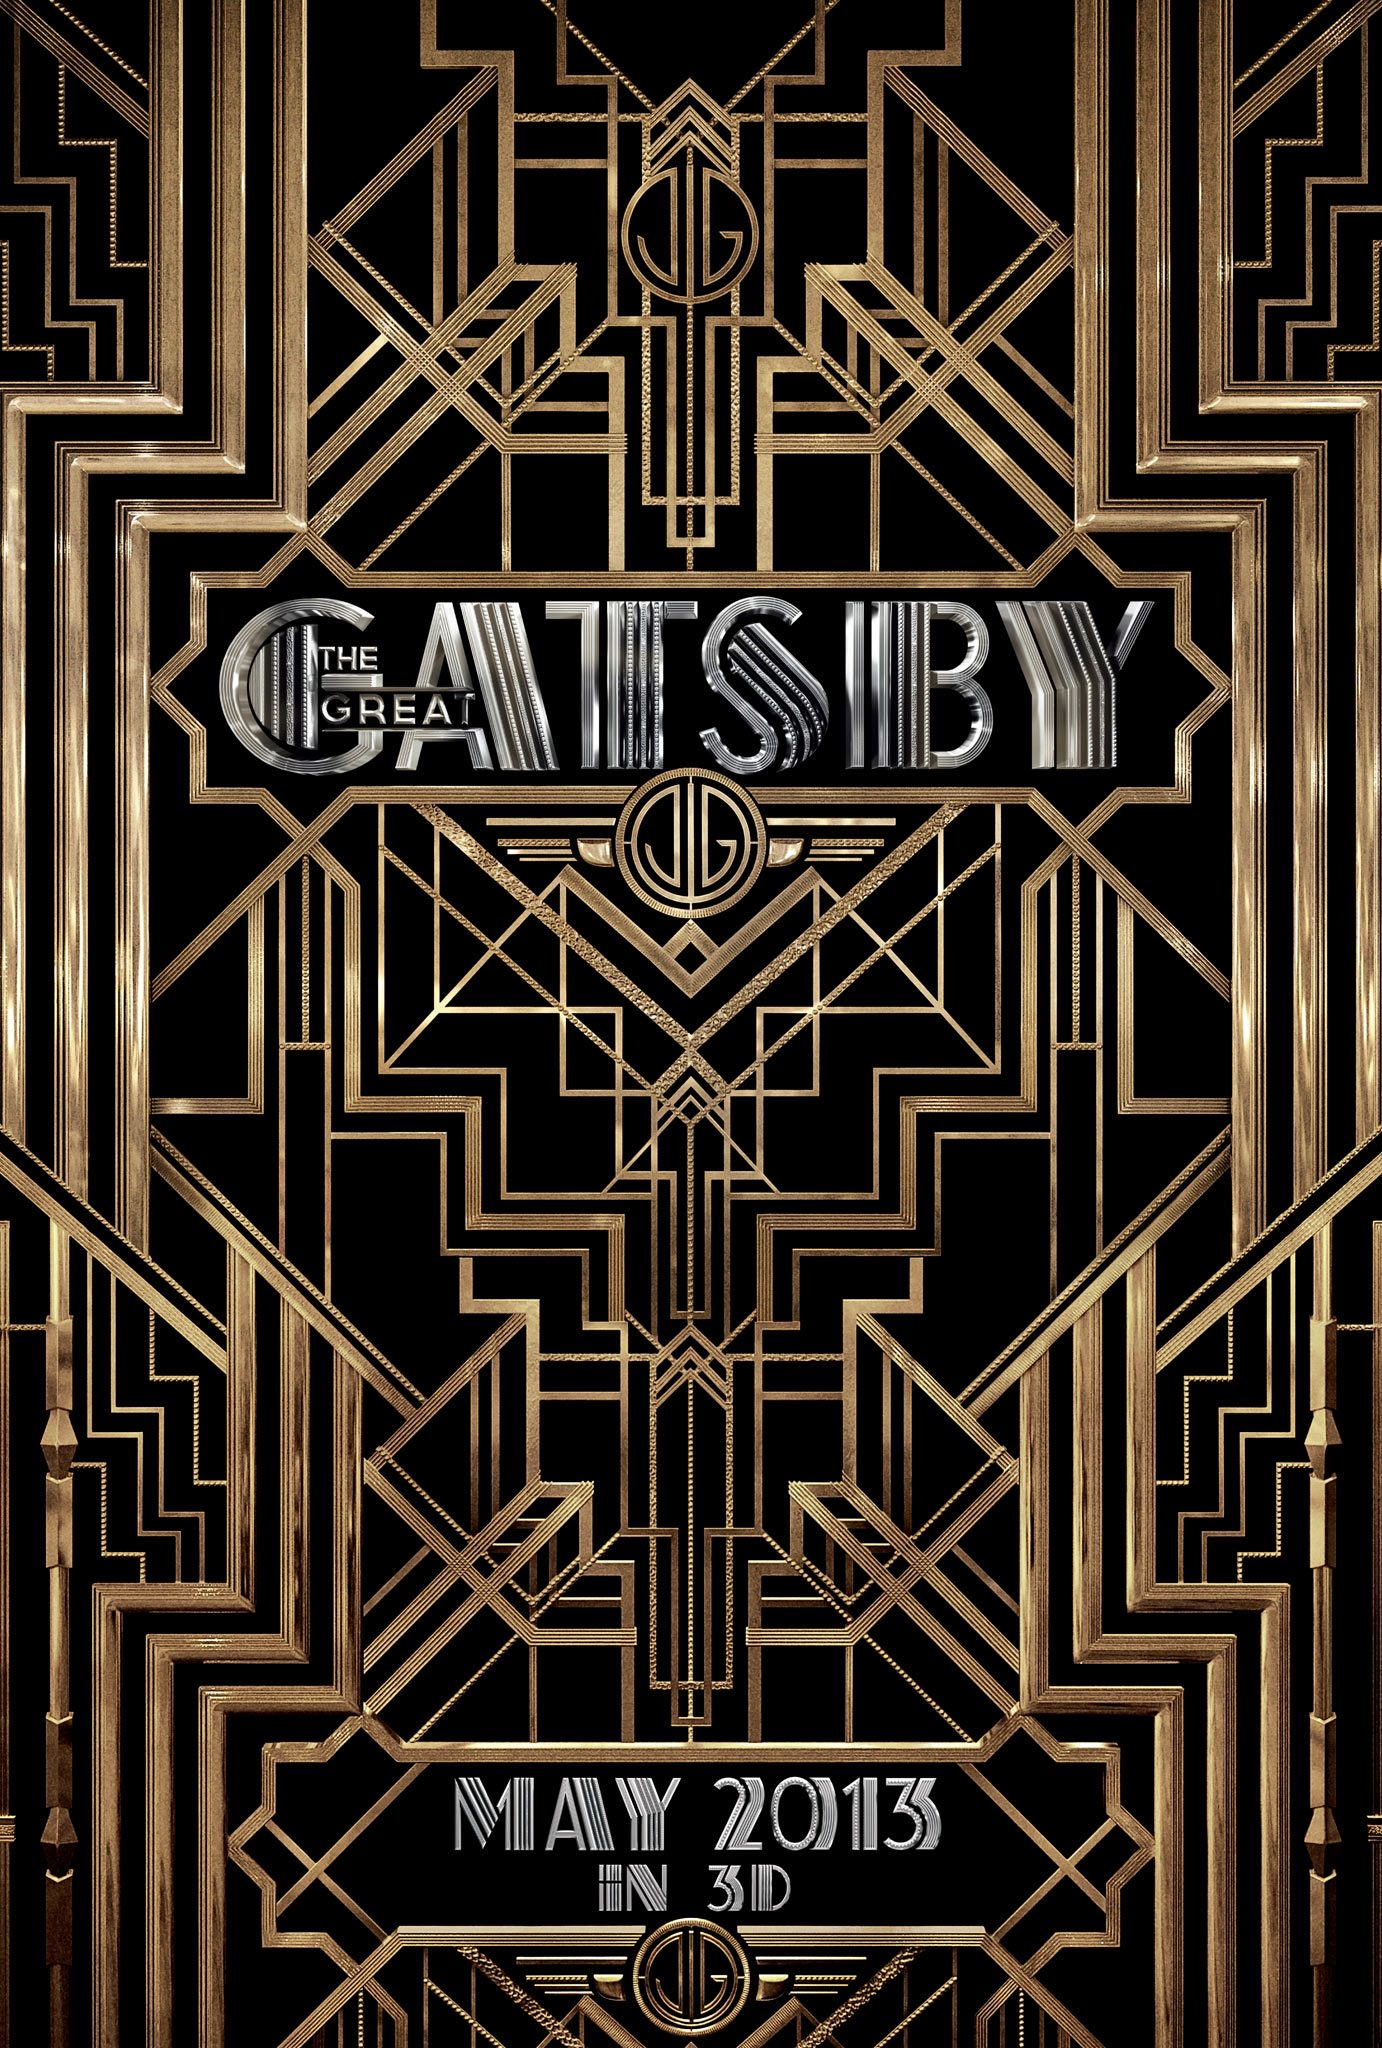 http://assets.fontsinuse.com/static/reviews/0/51751ce9/full/2013-04-The-Great-Gatsby-Poster-1.jpg